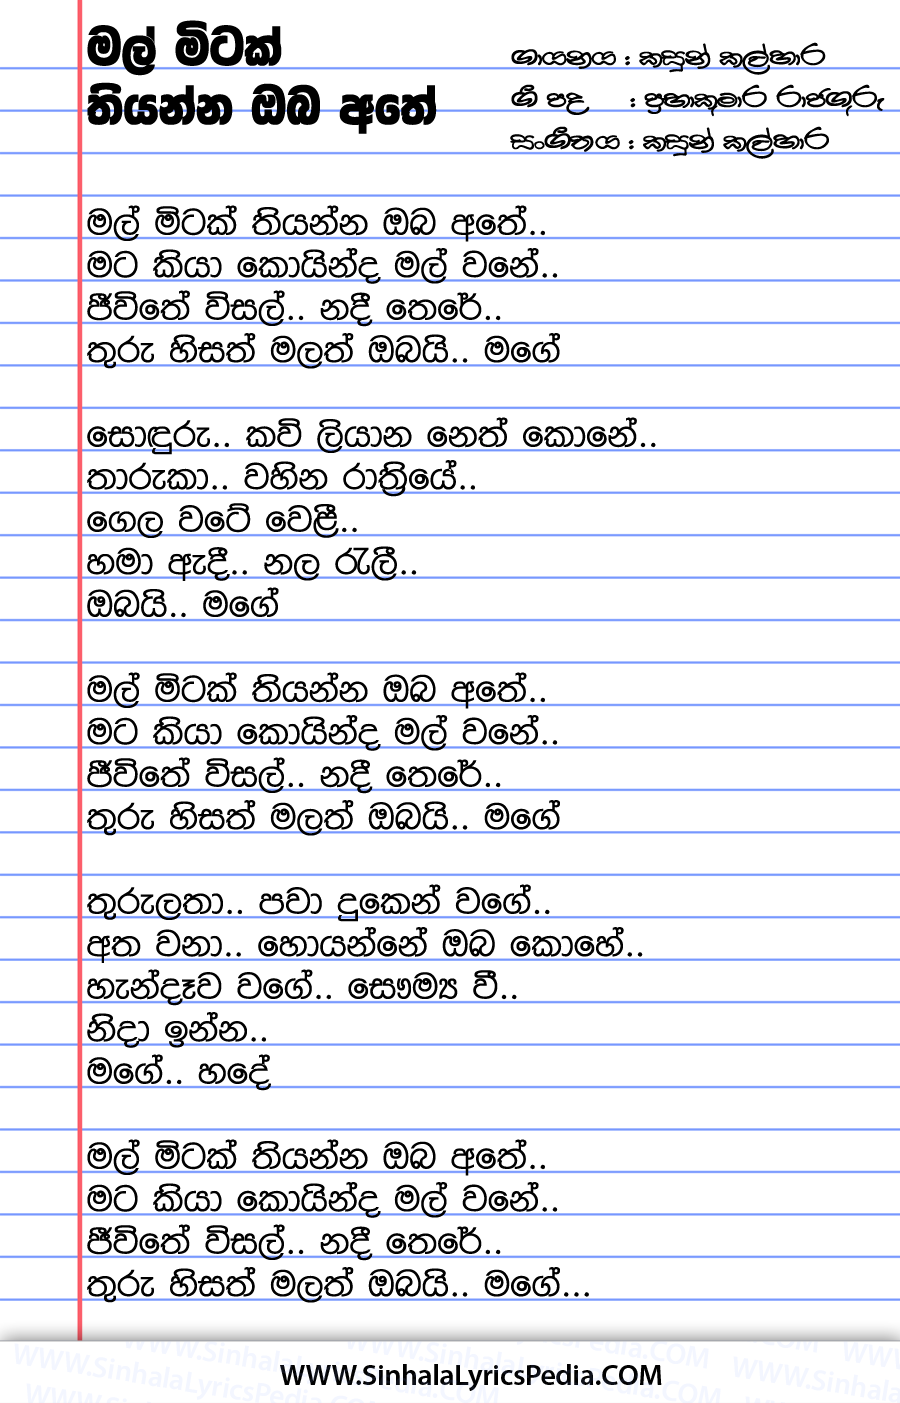 Mal Mitak Thiyanna Oba Athe Song Lyrics